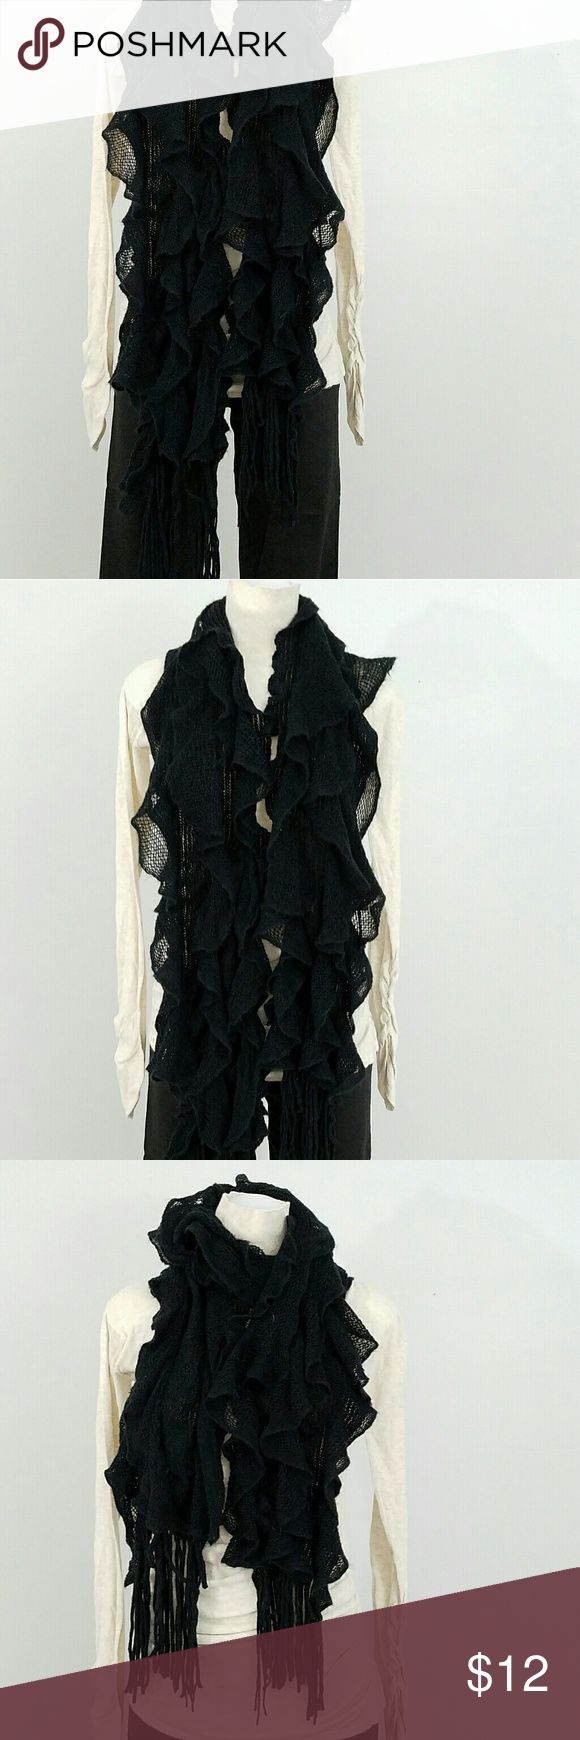 Black Frilly Scarf Very soft, 100% acrylic loose knit scarf. There are 4 rows attached to the base knit. This gives it a very feminine appearance and adds bulk to help keep warm. Accessories Scarves & Wraps